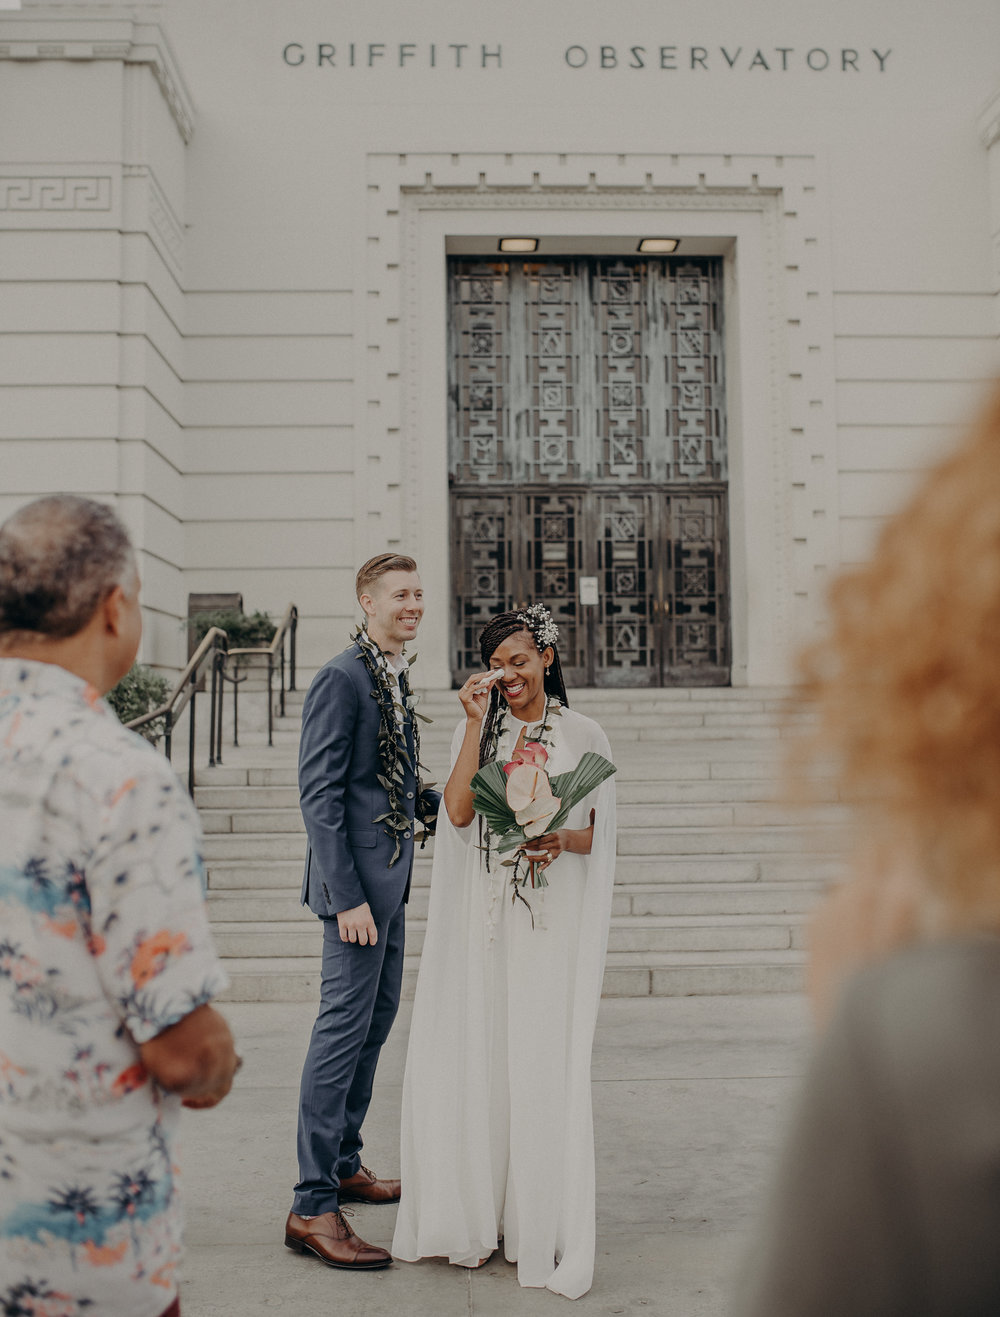 Los Angeles Wedding Photographer - Griffith Observatory Elopement - Long Beach wedding photo - IsaiahAndTaylor.com-039.jpg